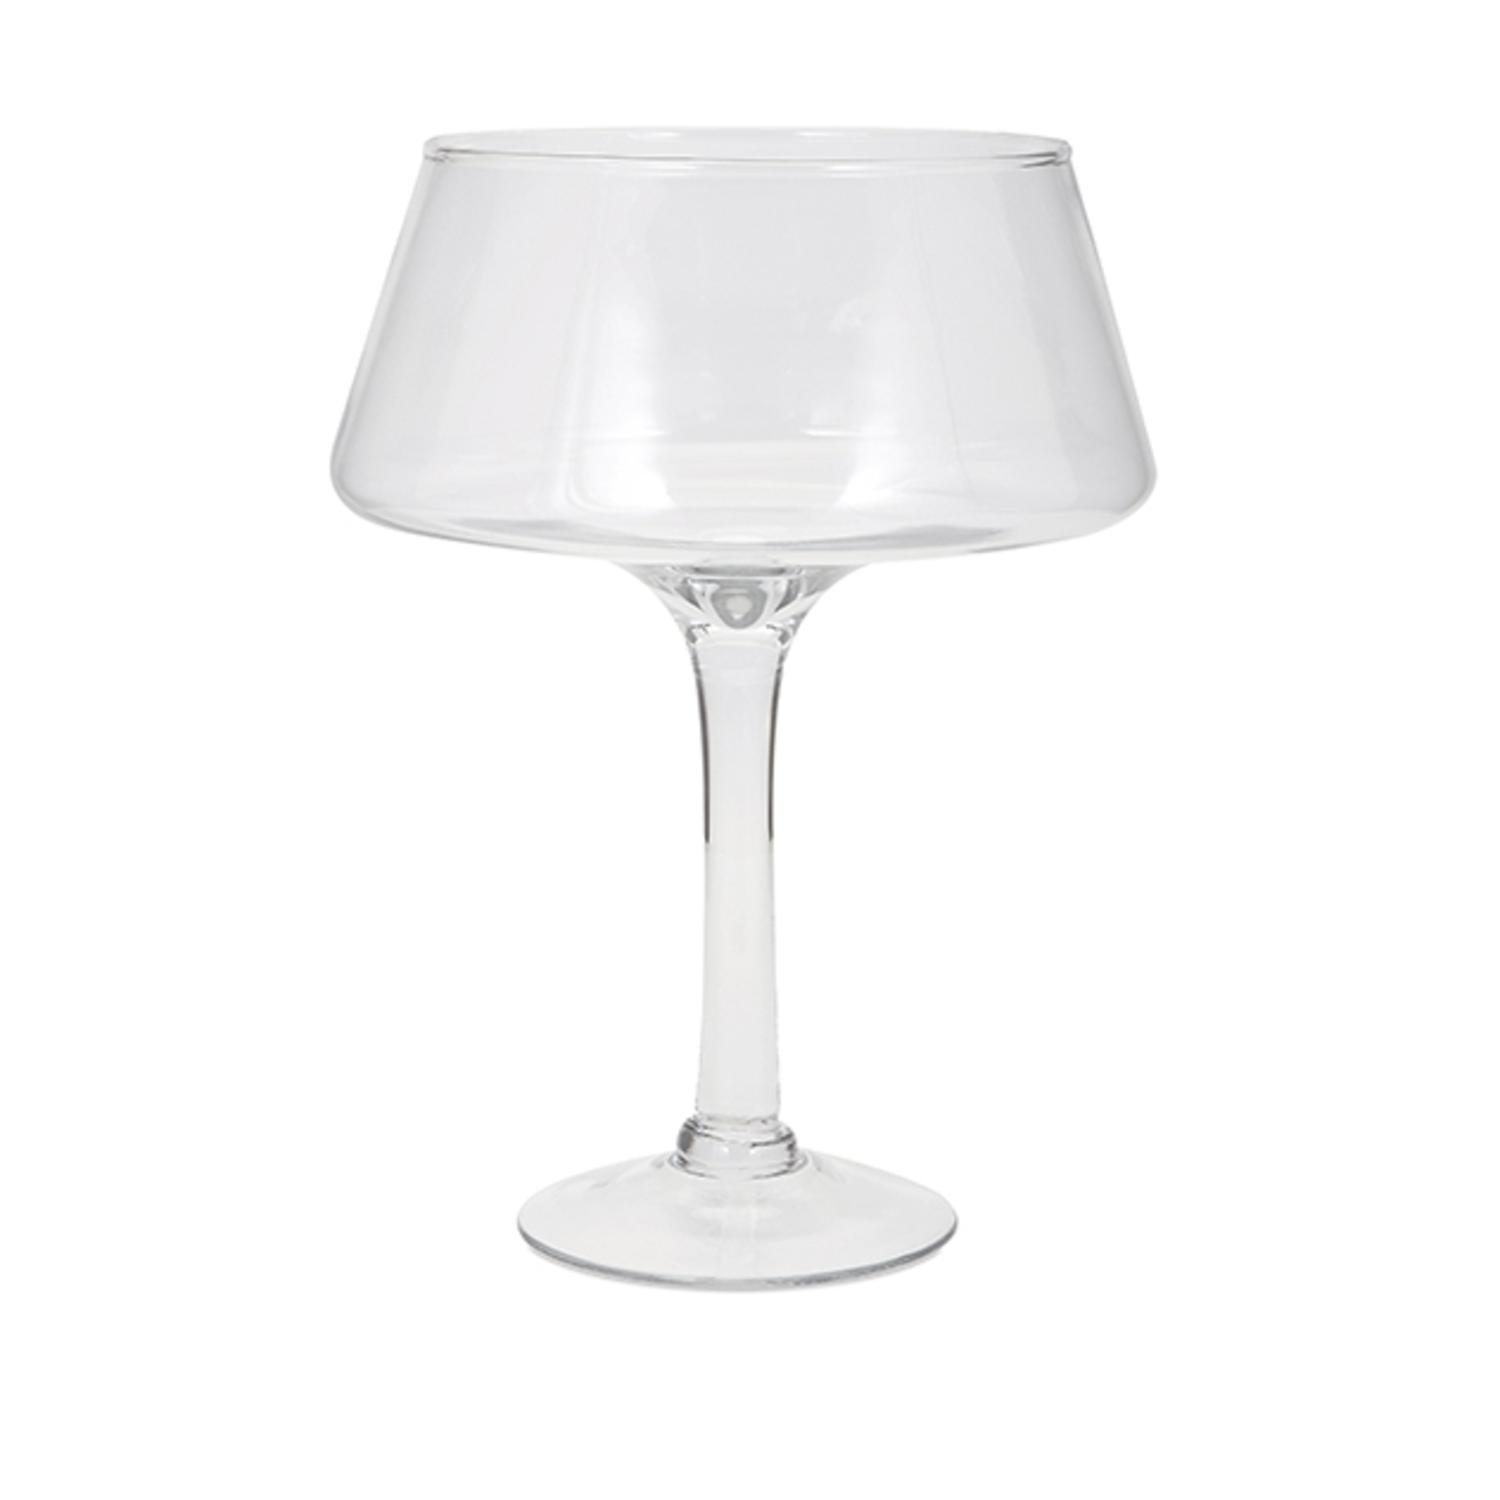 "15.25"" Large Henriette Clear Transparent Decorative Glass Table Top Pedestal Bowl by CC Home Furnishings"